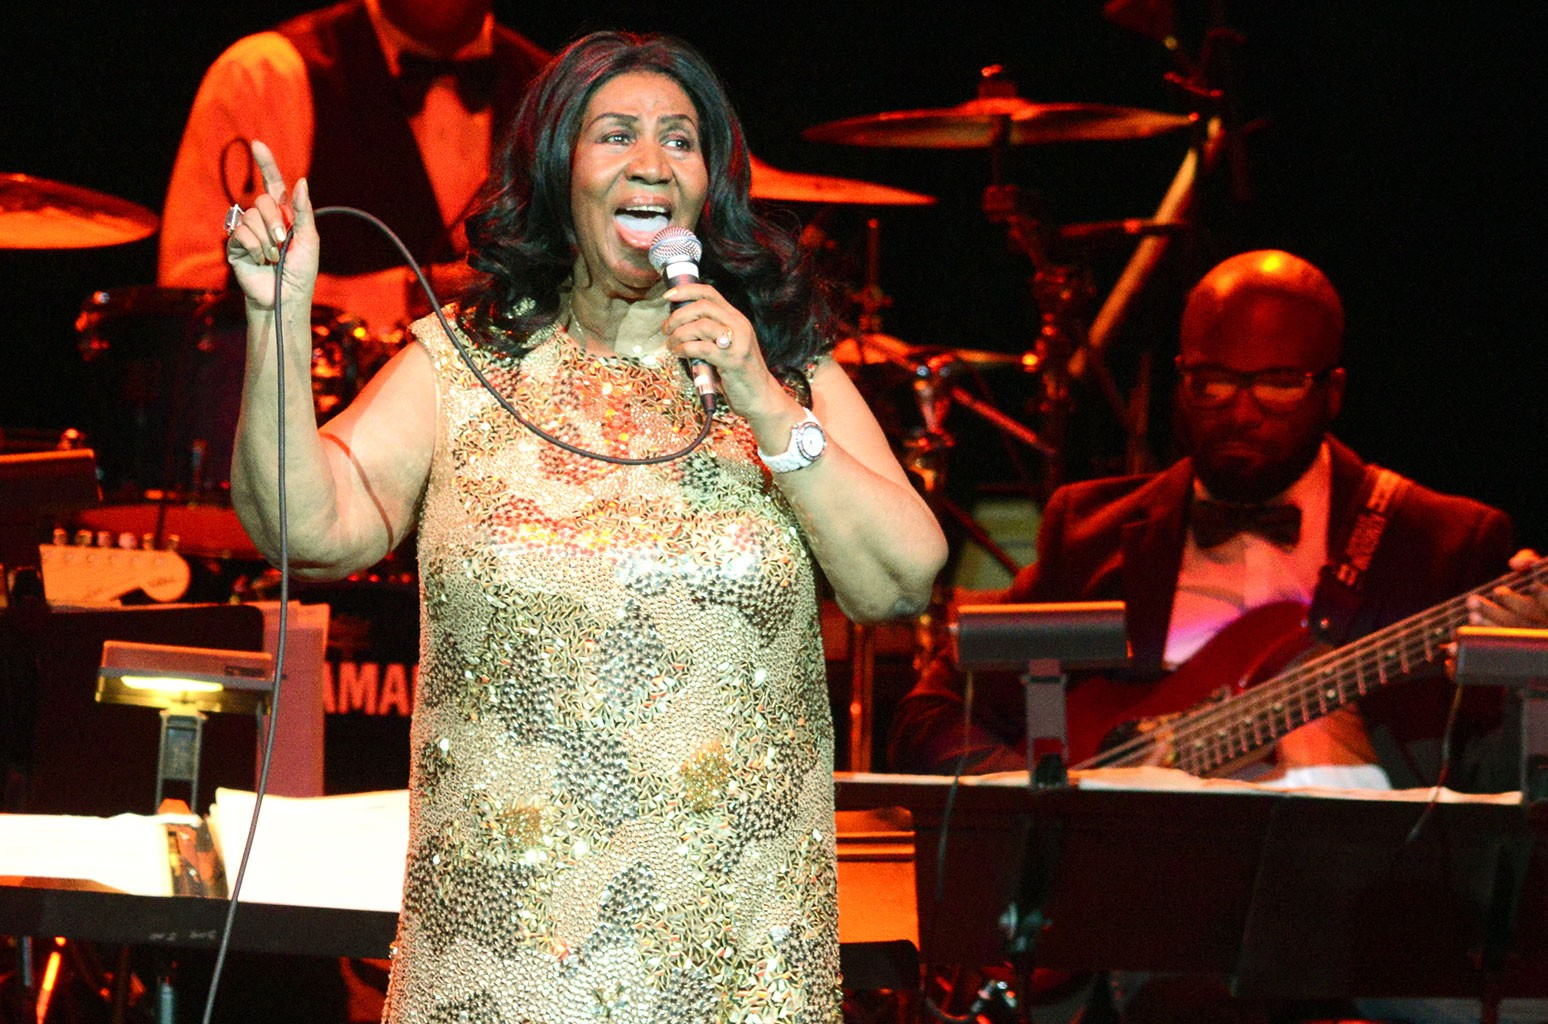 Sydney Pollack's Lawyer May Face Trial Over Aretha Franklin's 'Amazing Grace'